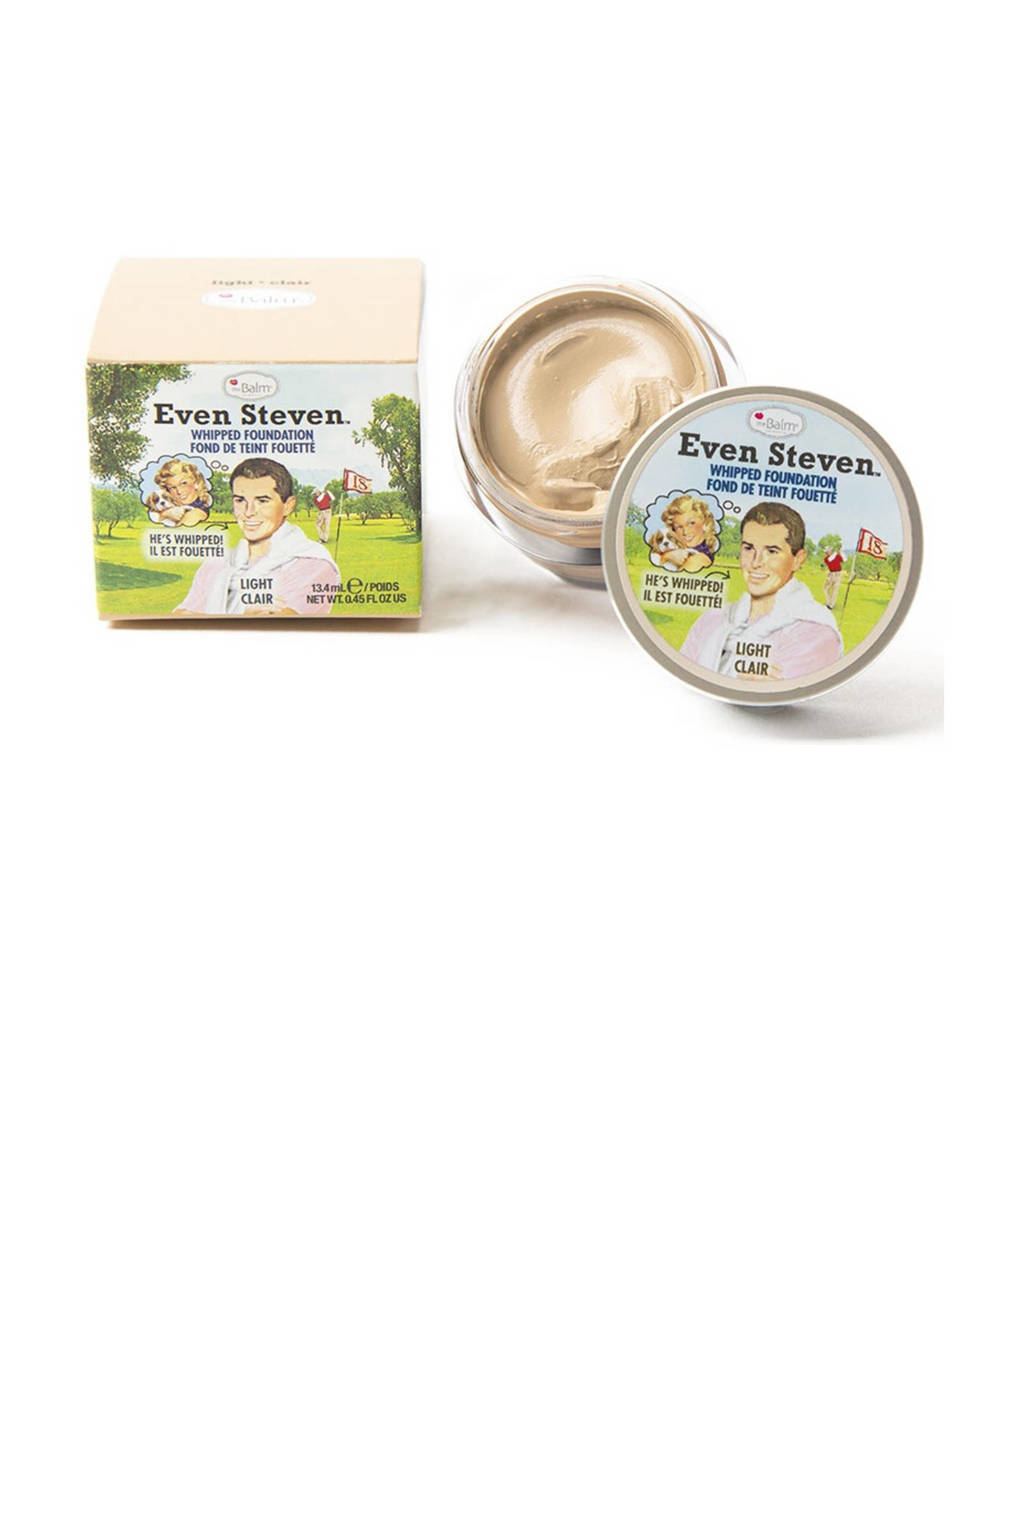 The Balm Even Steven foundation - Light